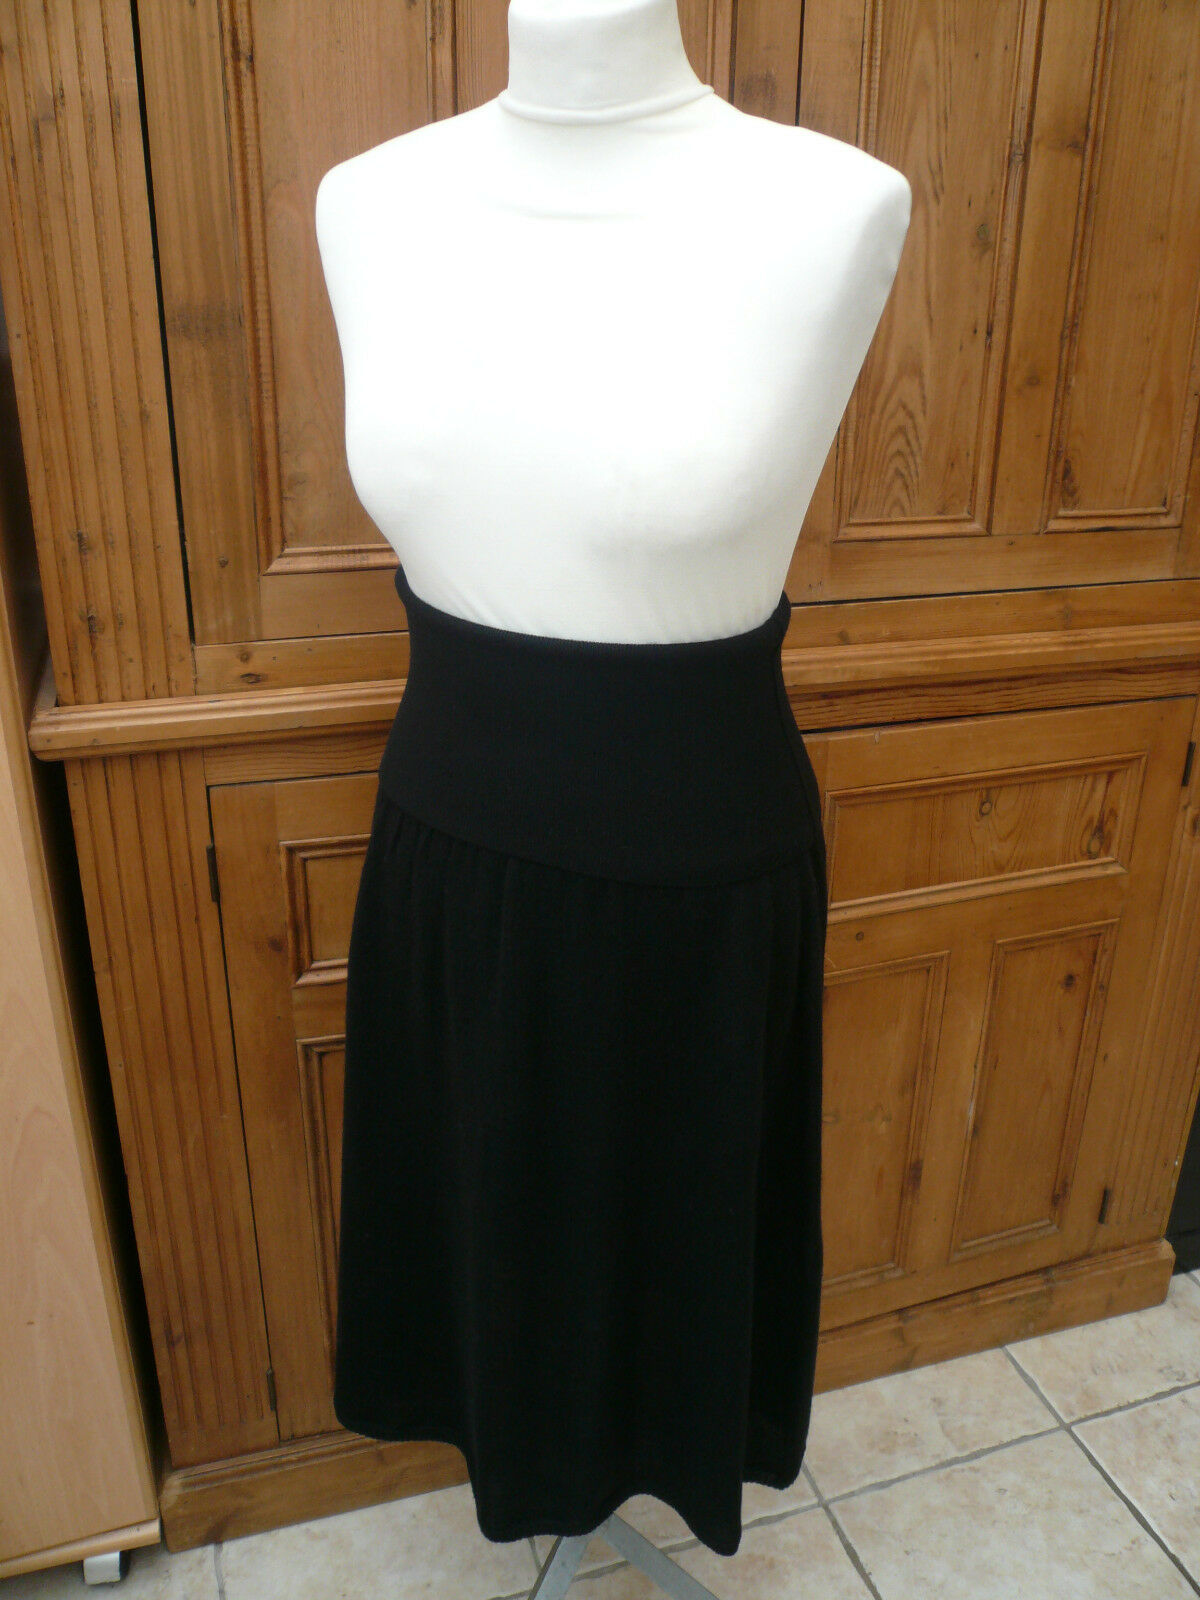 NEW skirt dress 10 DKNY merino mix pristine stylish warm elegant versatile